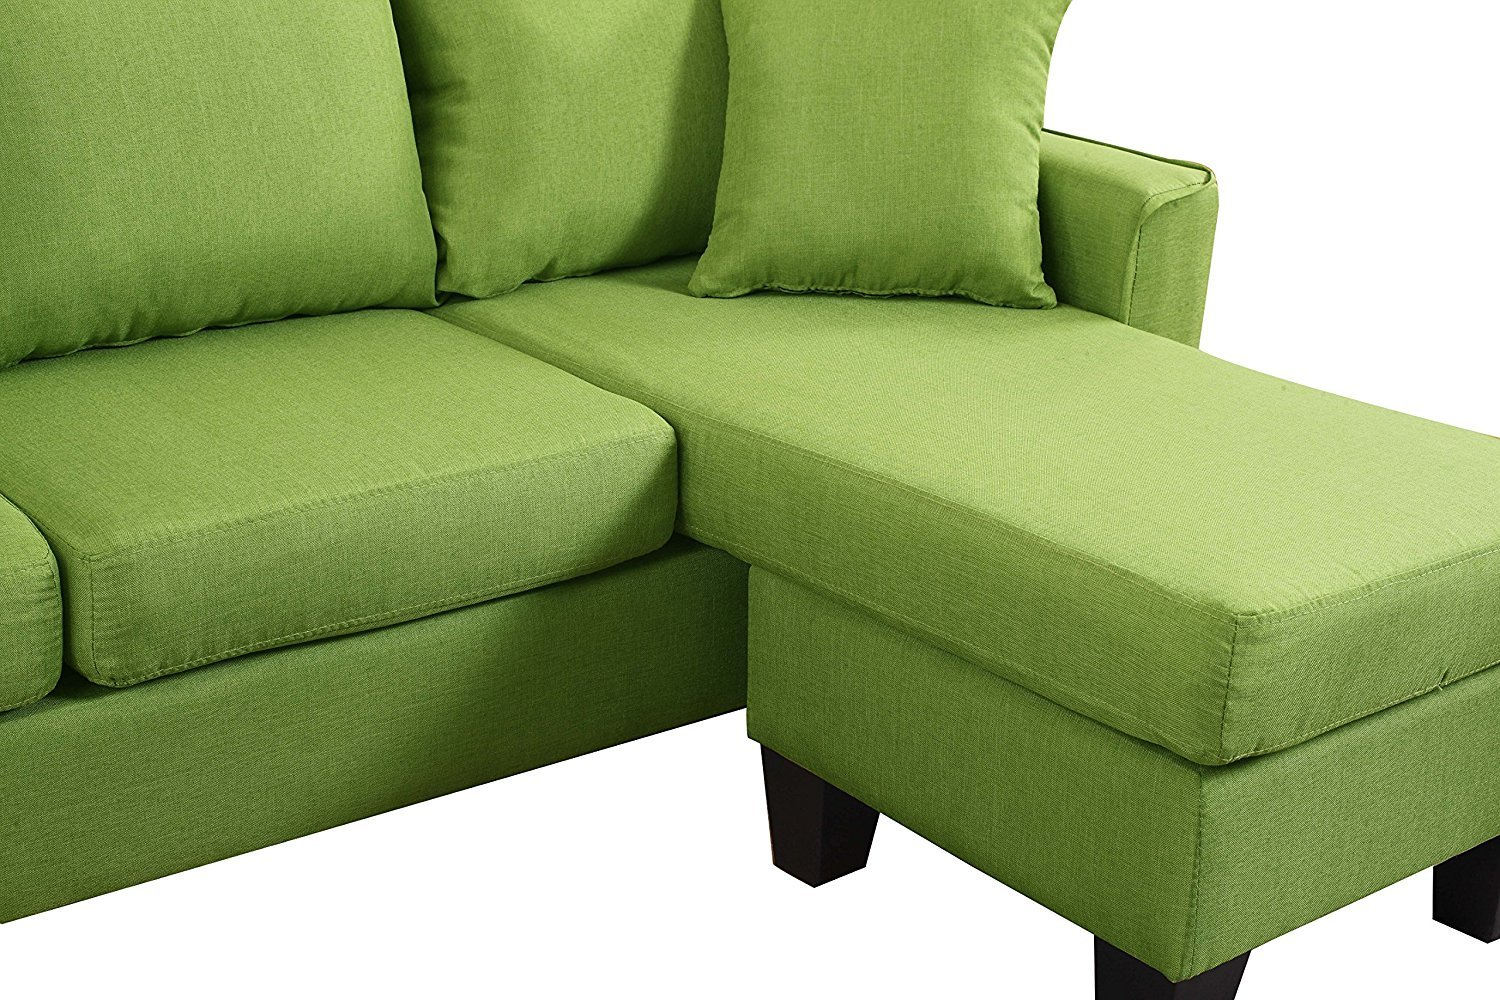 Miraculous Details About Modern Linen Fabric Small Space Sectional Sofa With Reversible Chaise Green Creativecarmelina Interior Chair Design Creativecarmelinacom